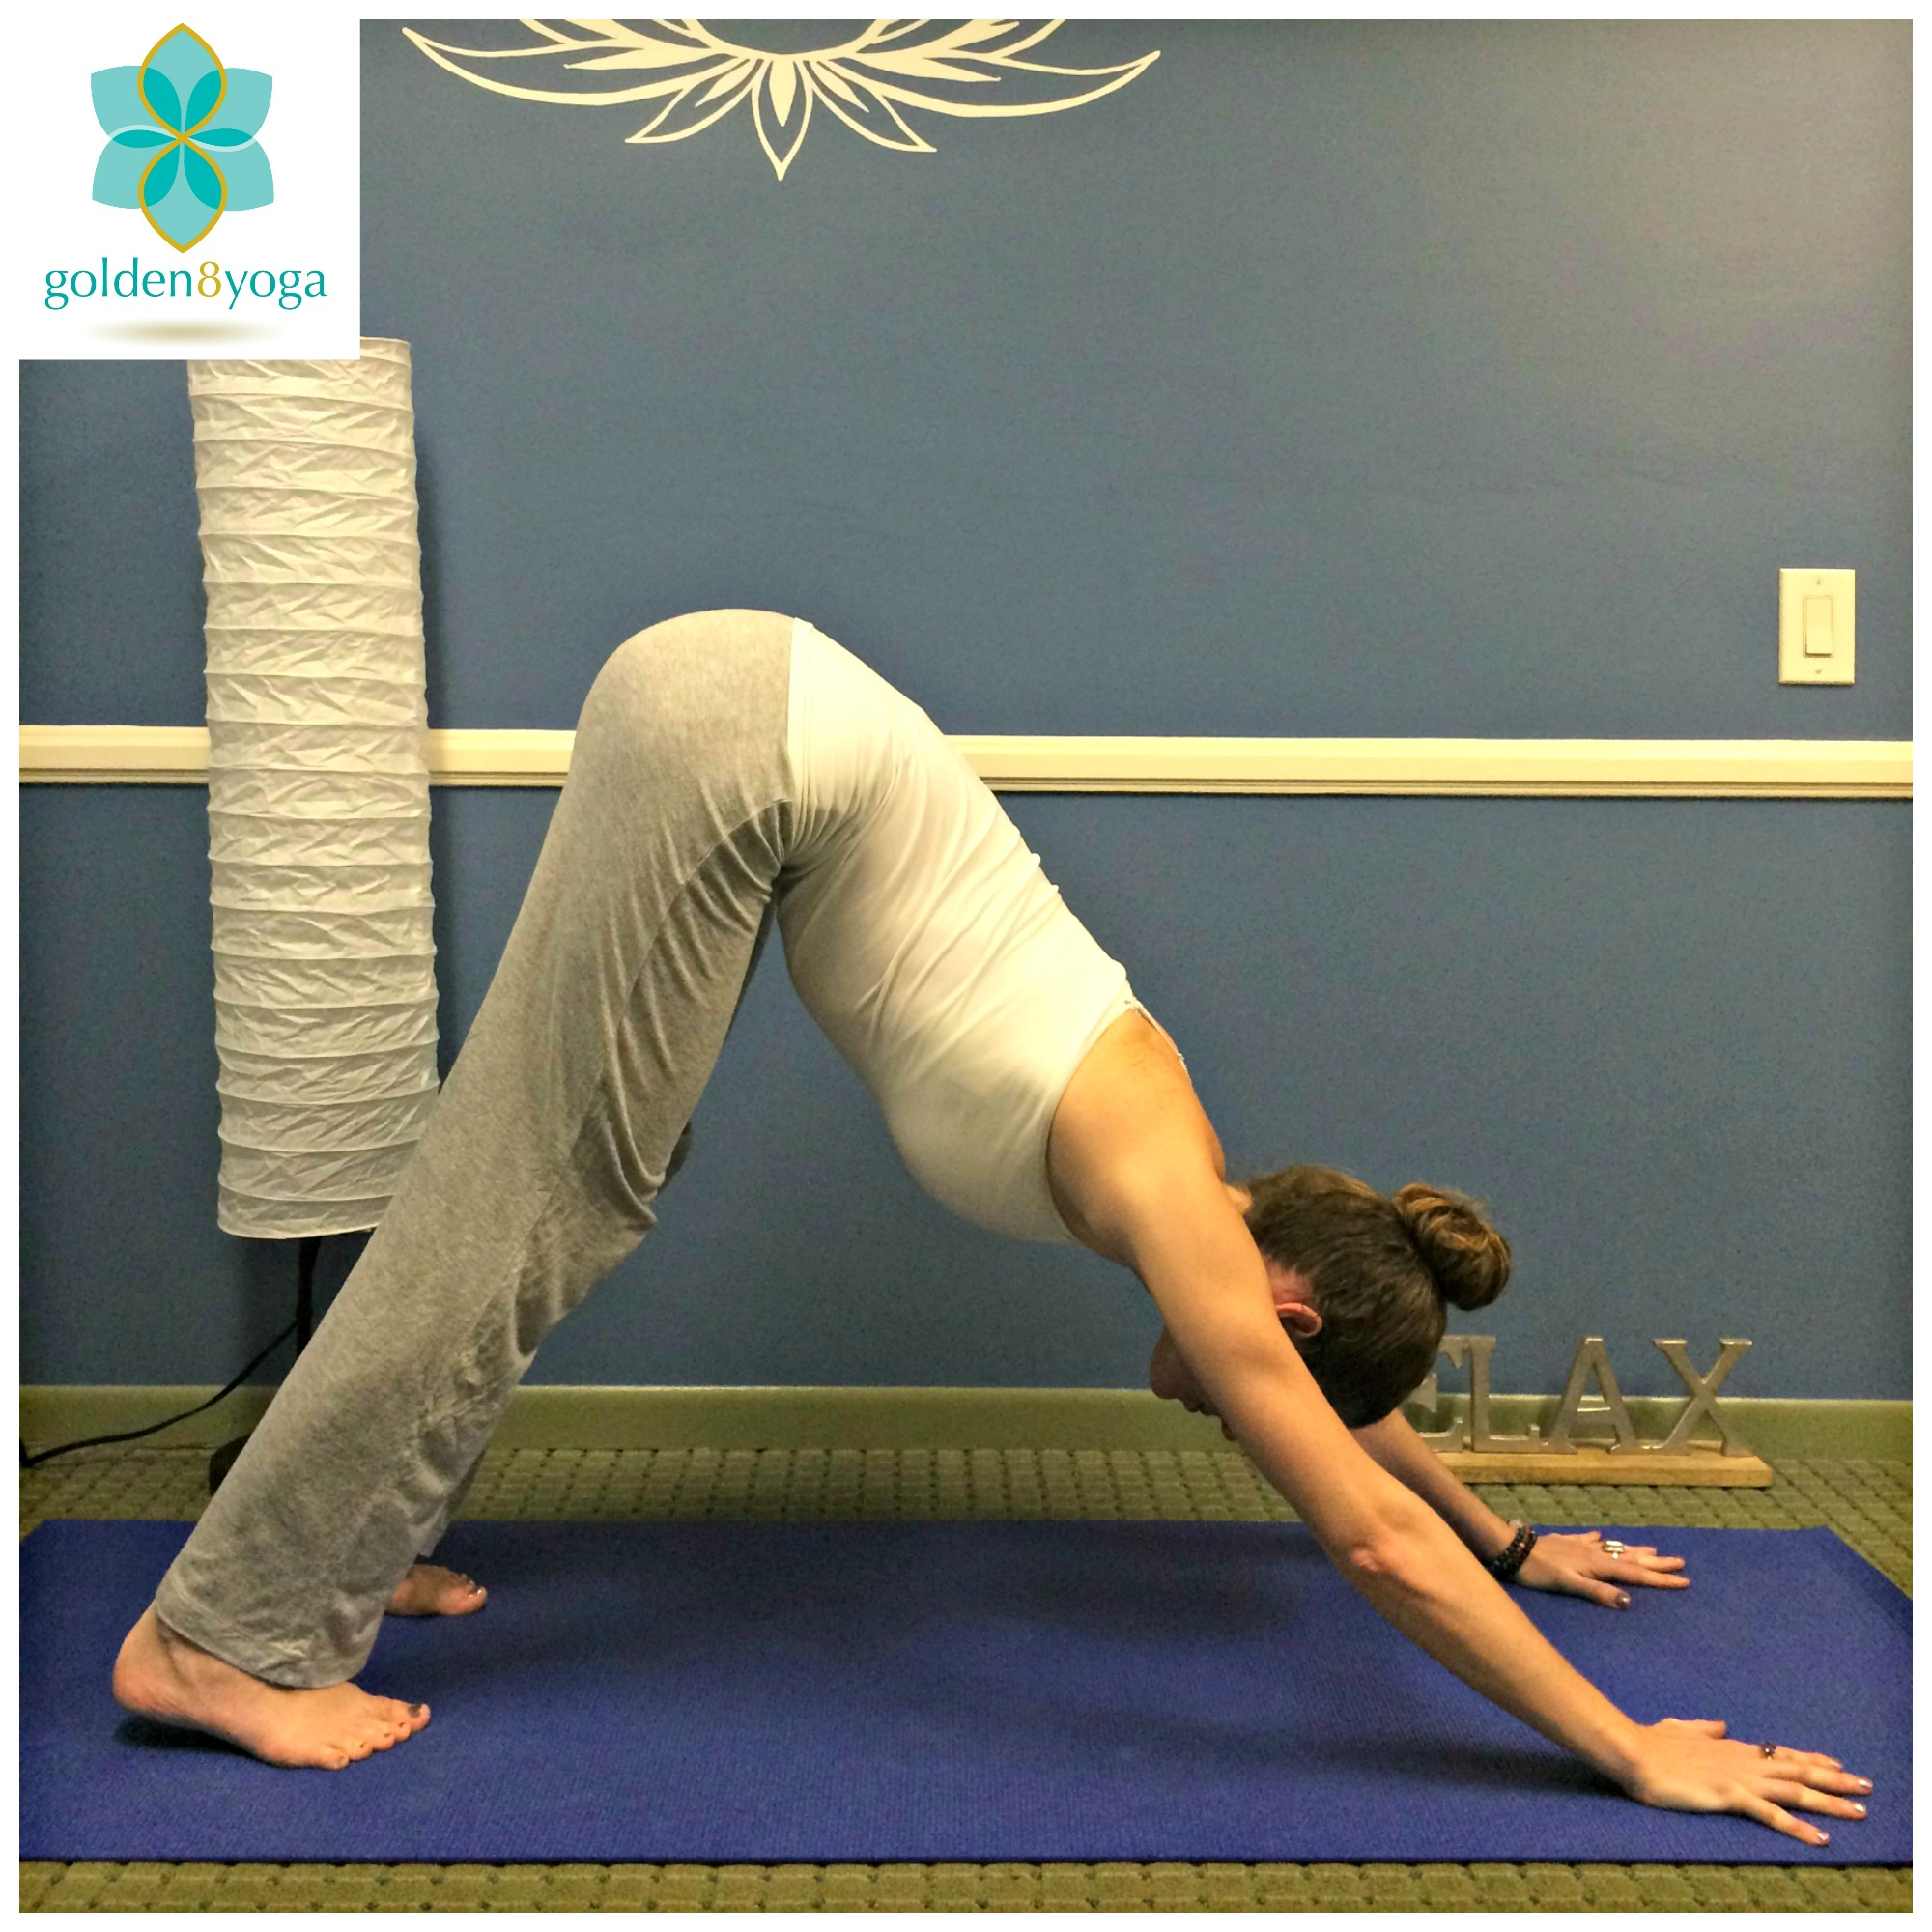 Downward Facing Dog  Try this pose for an overall stretch of the body after a long day of work or to release tightness in the body to help promote relaxation. Downward Facing Dog opens the chest, stretches the back, lengthens the spine, and stretches the back of your legs.  1. Start on your hands and knees in a table top position. Hands will be shoulder width distance and tuck your toes under. (Not pictured)  2. Begin to press your palms and all fingers into the floor and lift your hips up and back turning your body into an upside down 'V'.  3. Be sure to not lock your elbows or knees. Make sure your middle finger lines up with the middle of your wrist, and your feet are about hip-width distance apart.  4. Lift up through the tailbone so that your spine lengthens and feel your chest moving closer to your thighs. If it would feel good to you, begin to 'walk your dog' by bending each knee one at a time to help release tension in the body.  5. Hold this pose for 5-10 breaths, then release back into table top. Repeat 1-2 times more.